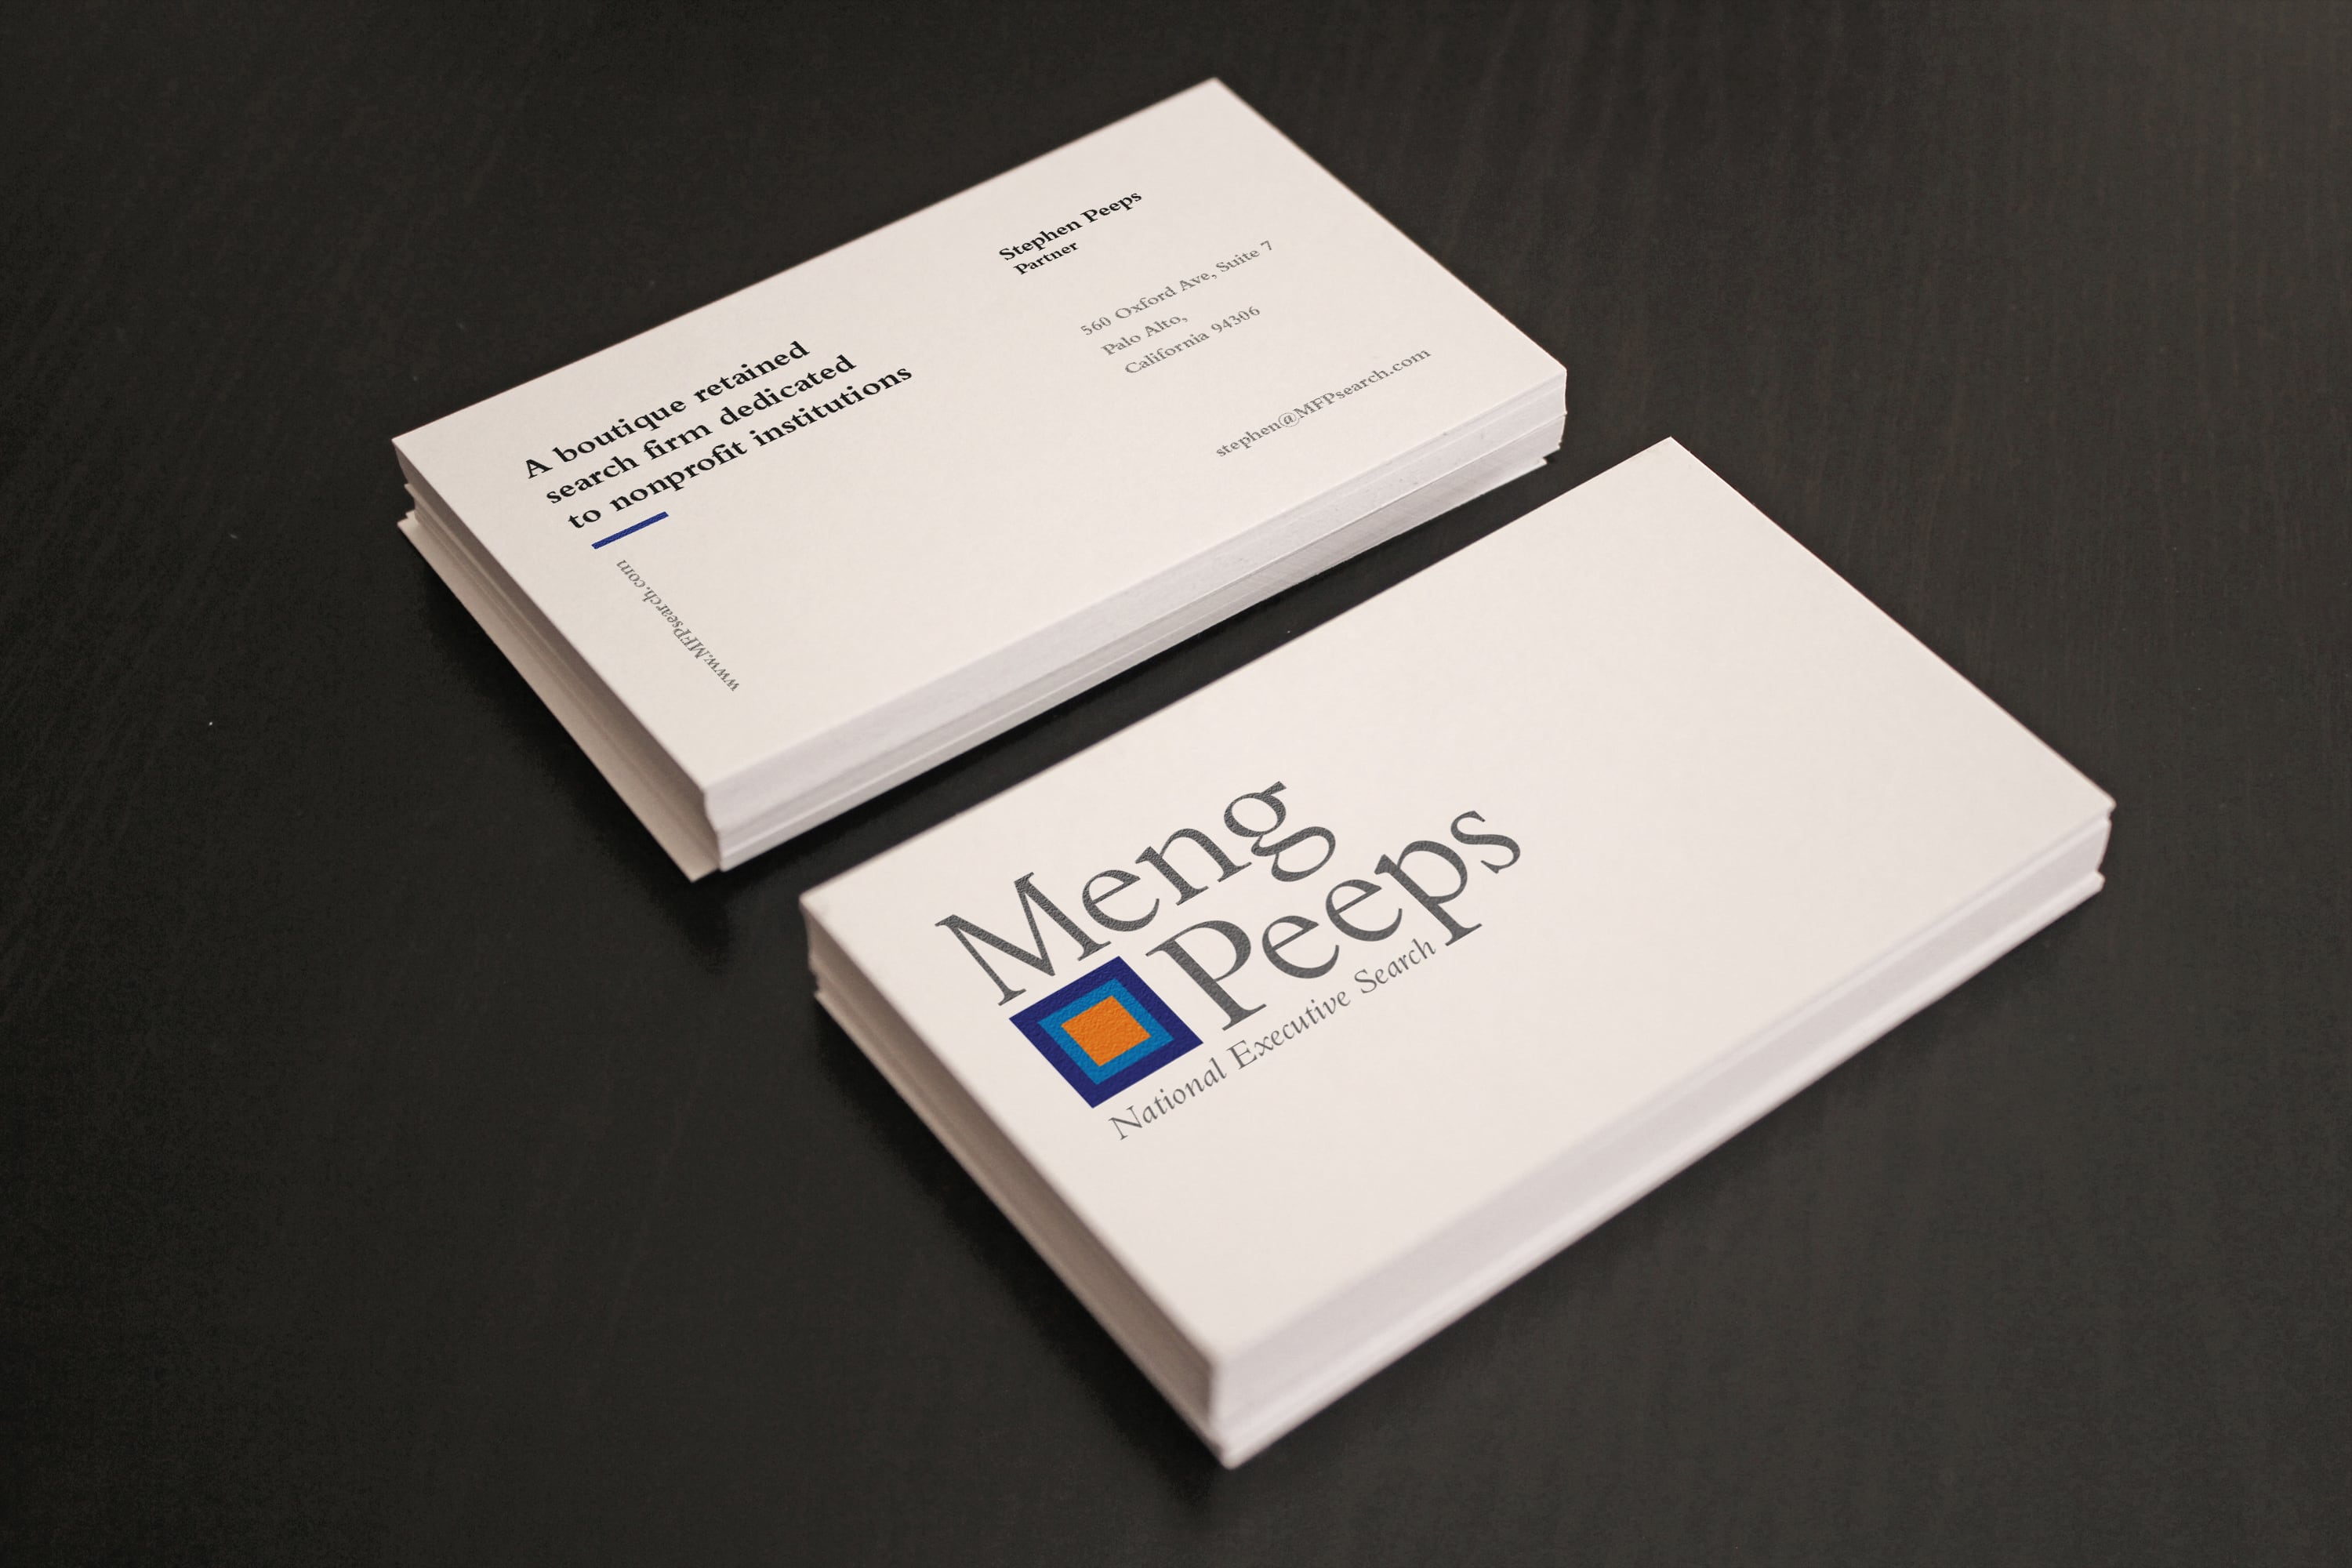 Logo and identity system for Meng Peeps, National Executive Search